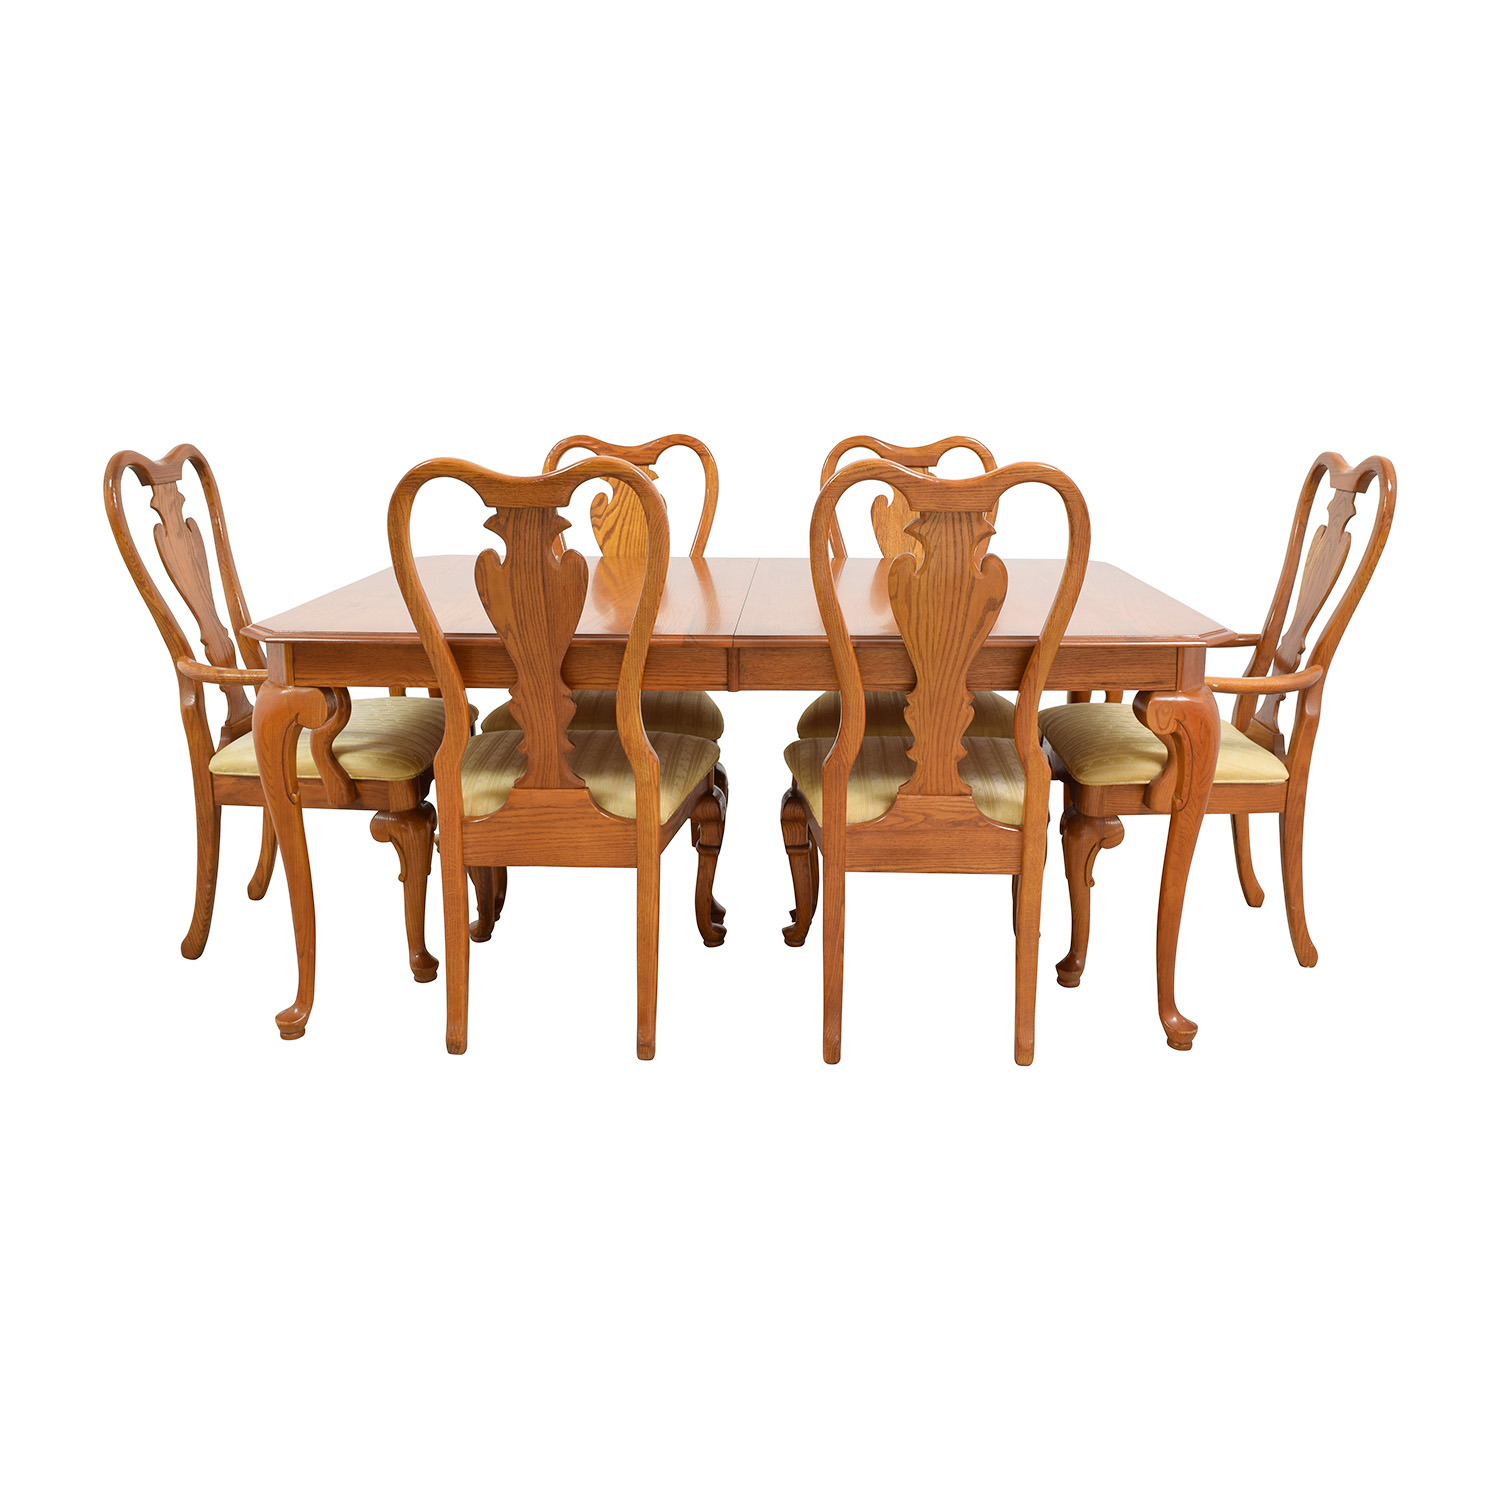 Classic Six-Piece Wooden Dining Set Tables